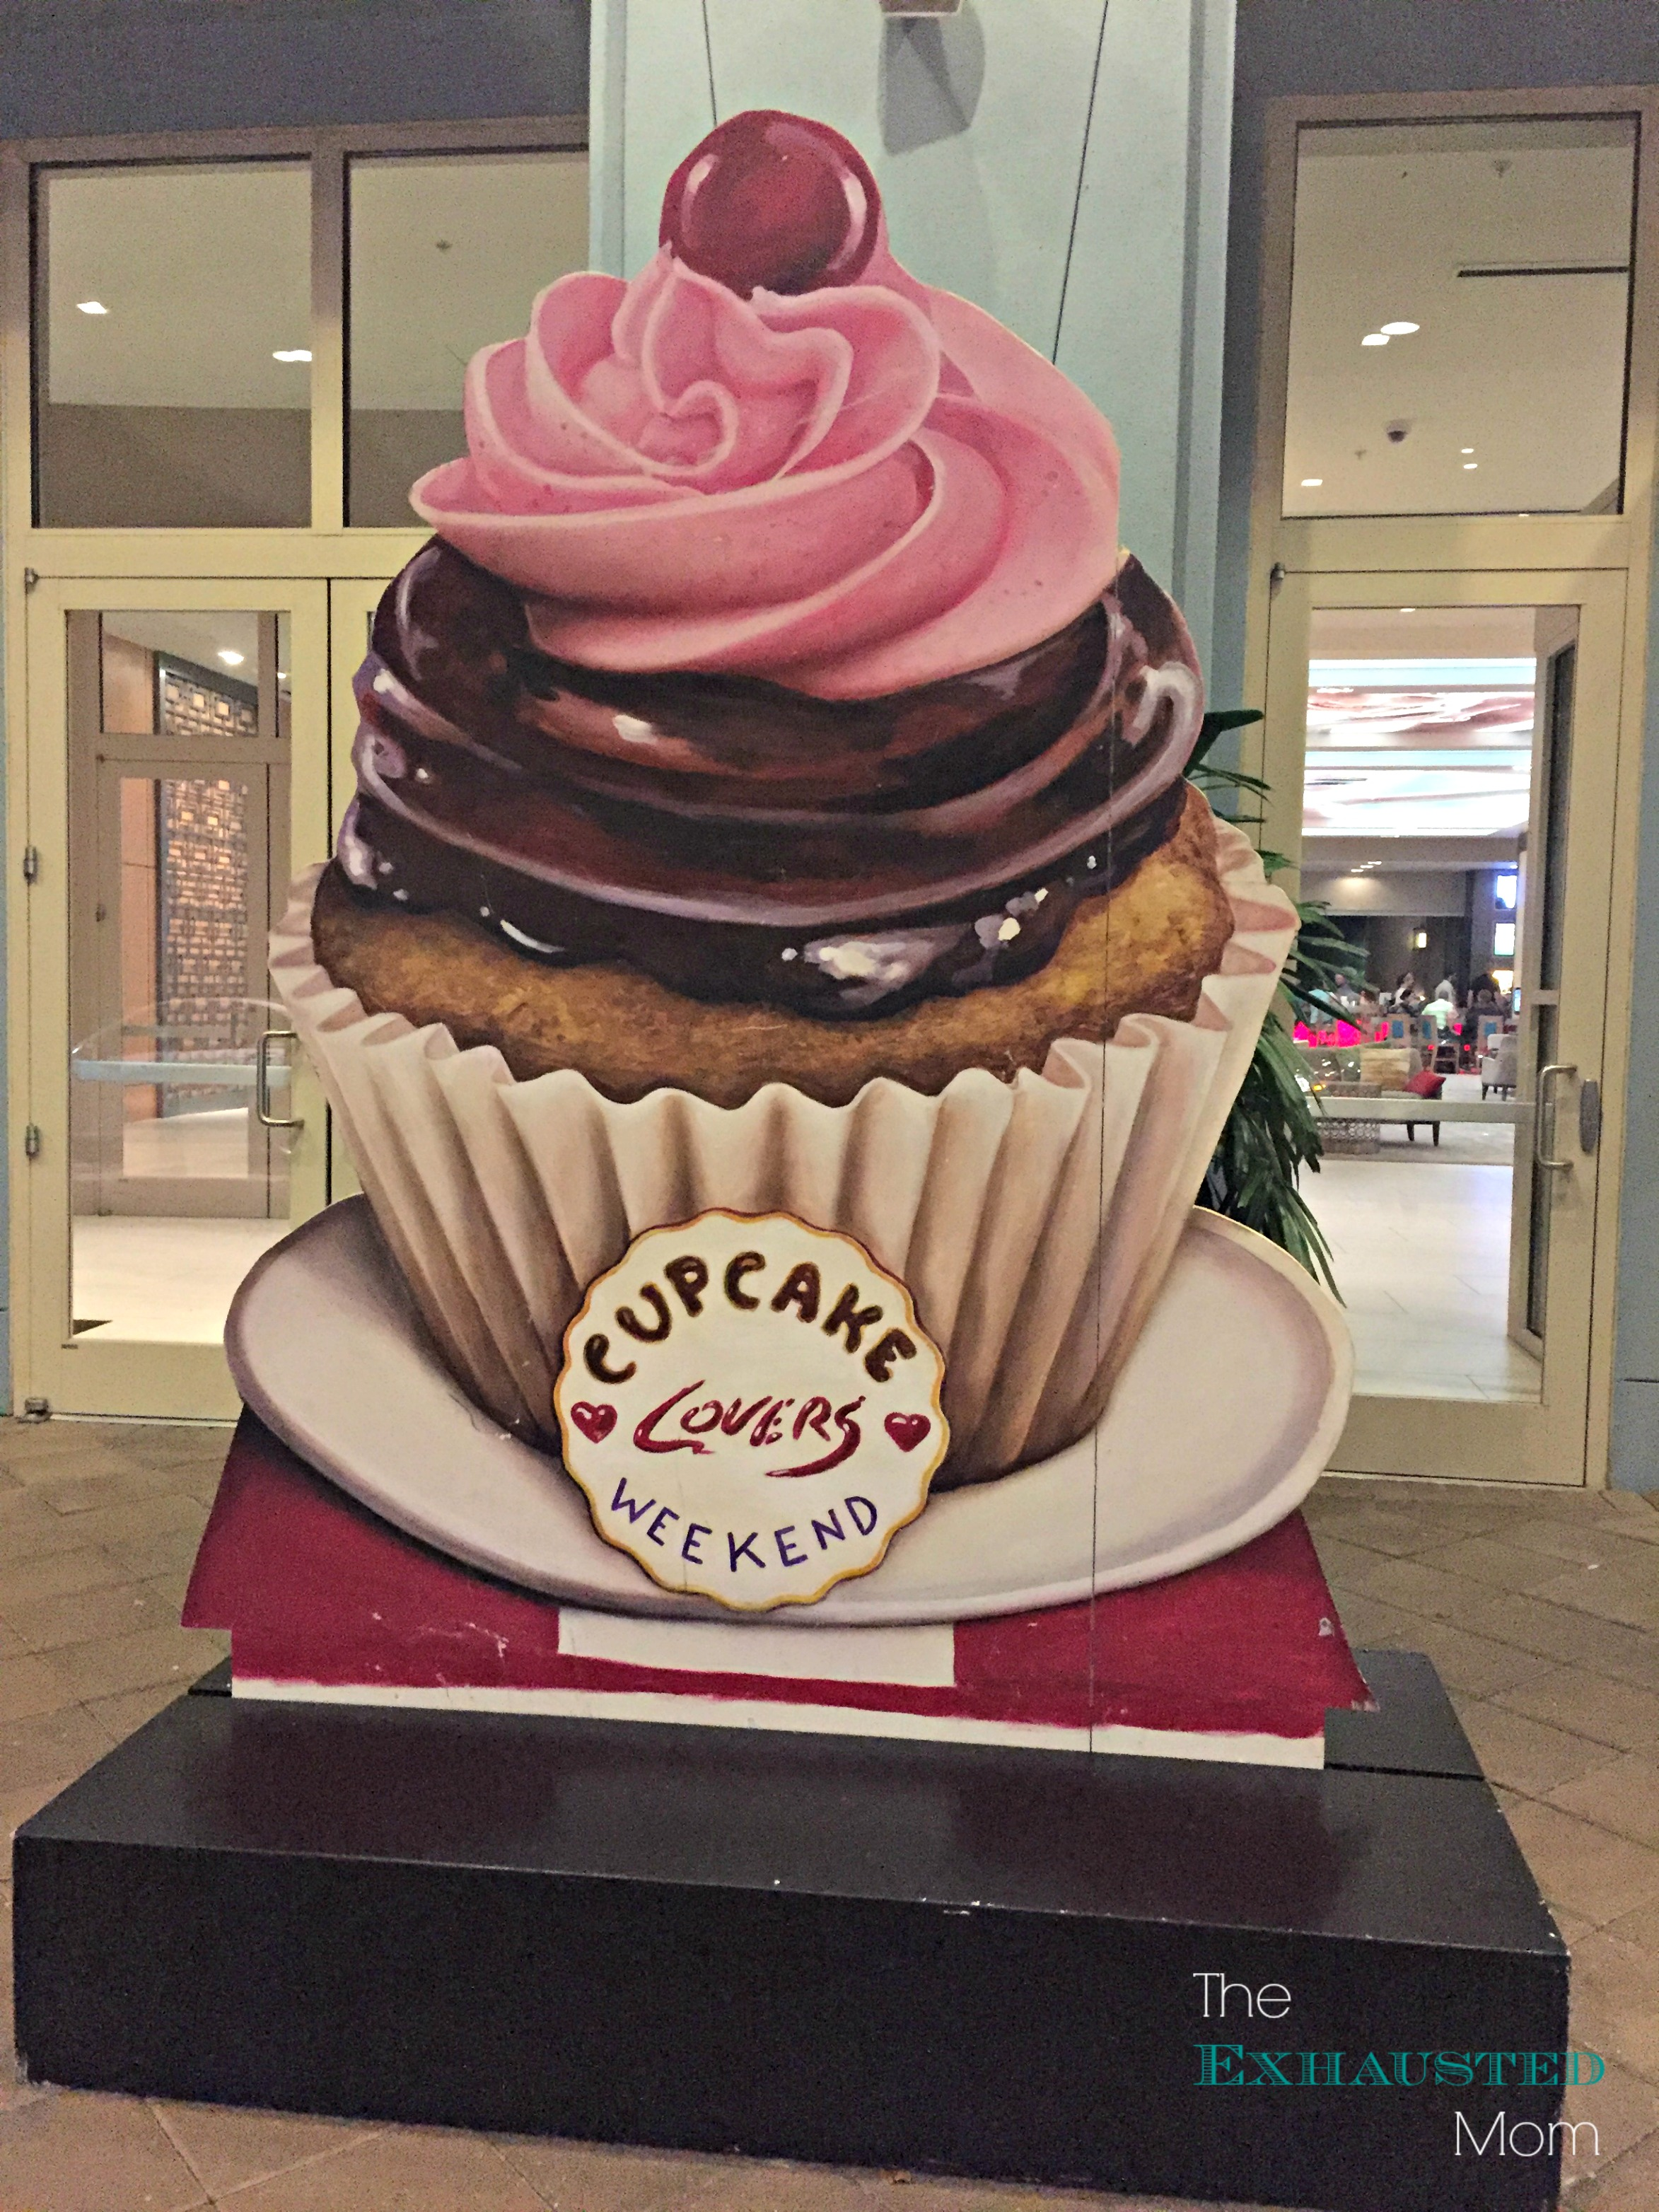 Cupcake Lovers weekend is a dream come true for all sweet lovers!